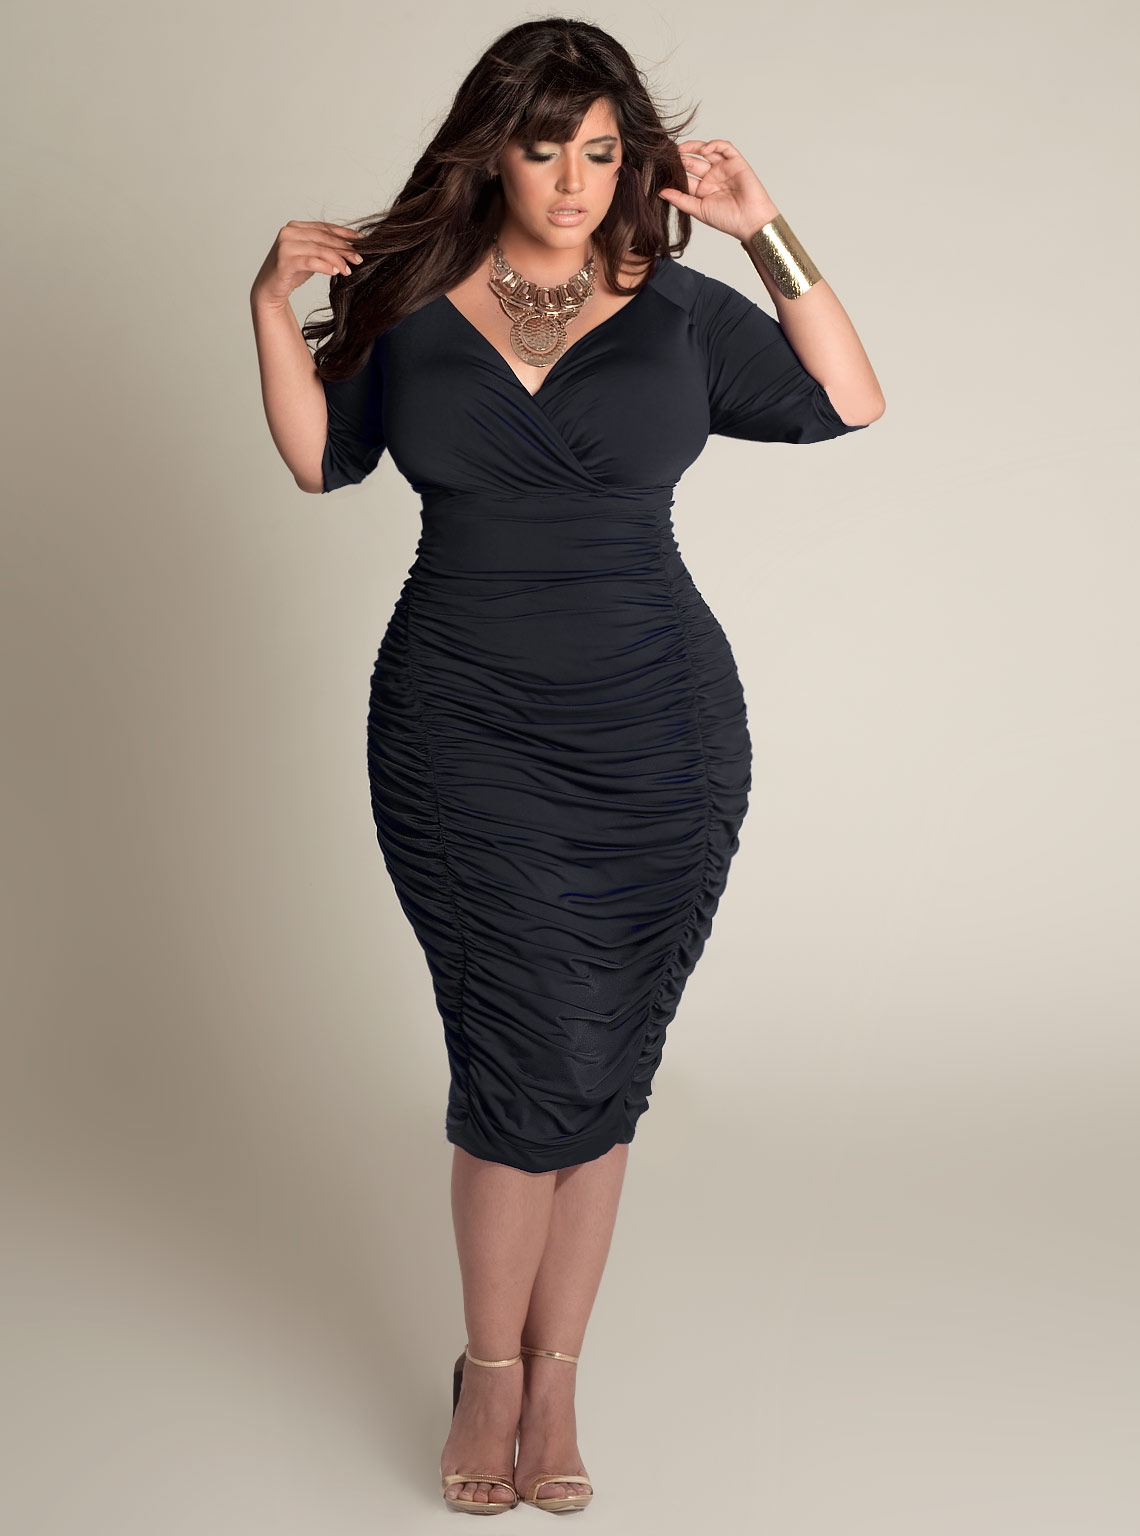 Find great deals on eBay for plus size little girls clothes. Shop with confidence. Skip to main content. eBay: Spoiled Little Mama Plus Size Girls Blue Striped Dress See more like this. Leather Live a Little Plus Size Clothing for Women. Acetate Carole Little Plus Size Clothing for Women.